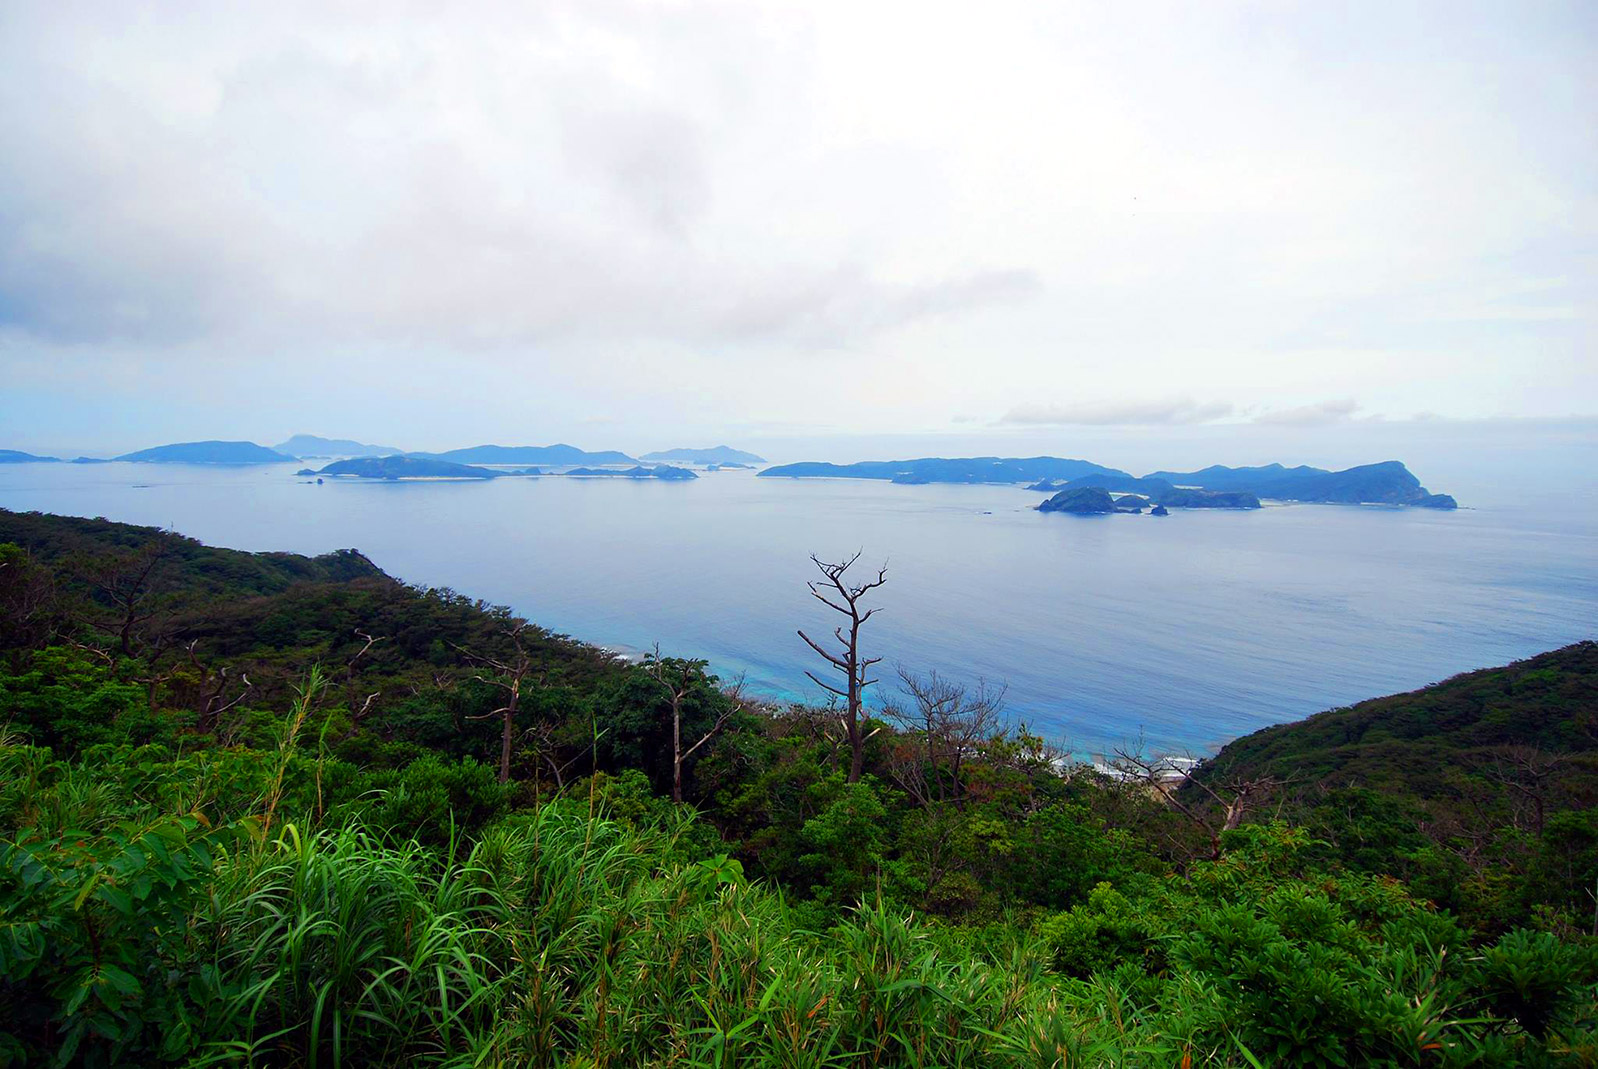 Kerama Islands from Fukaji Island